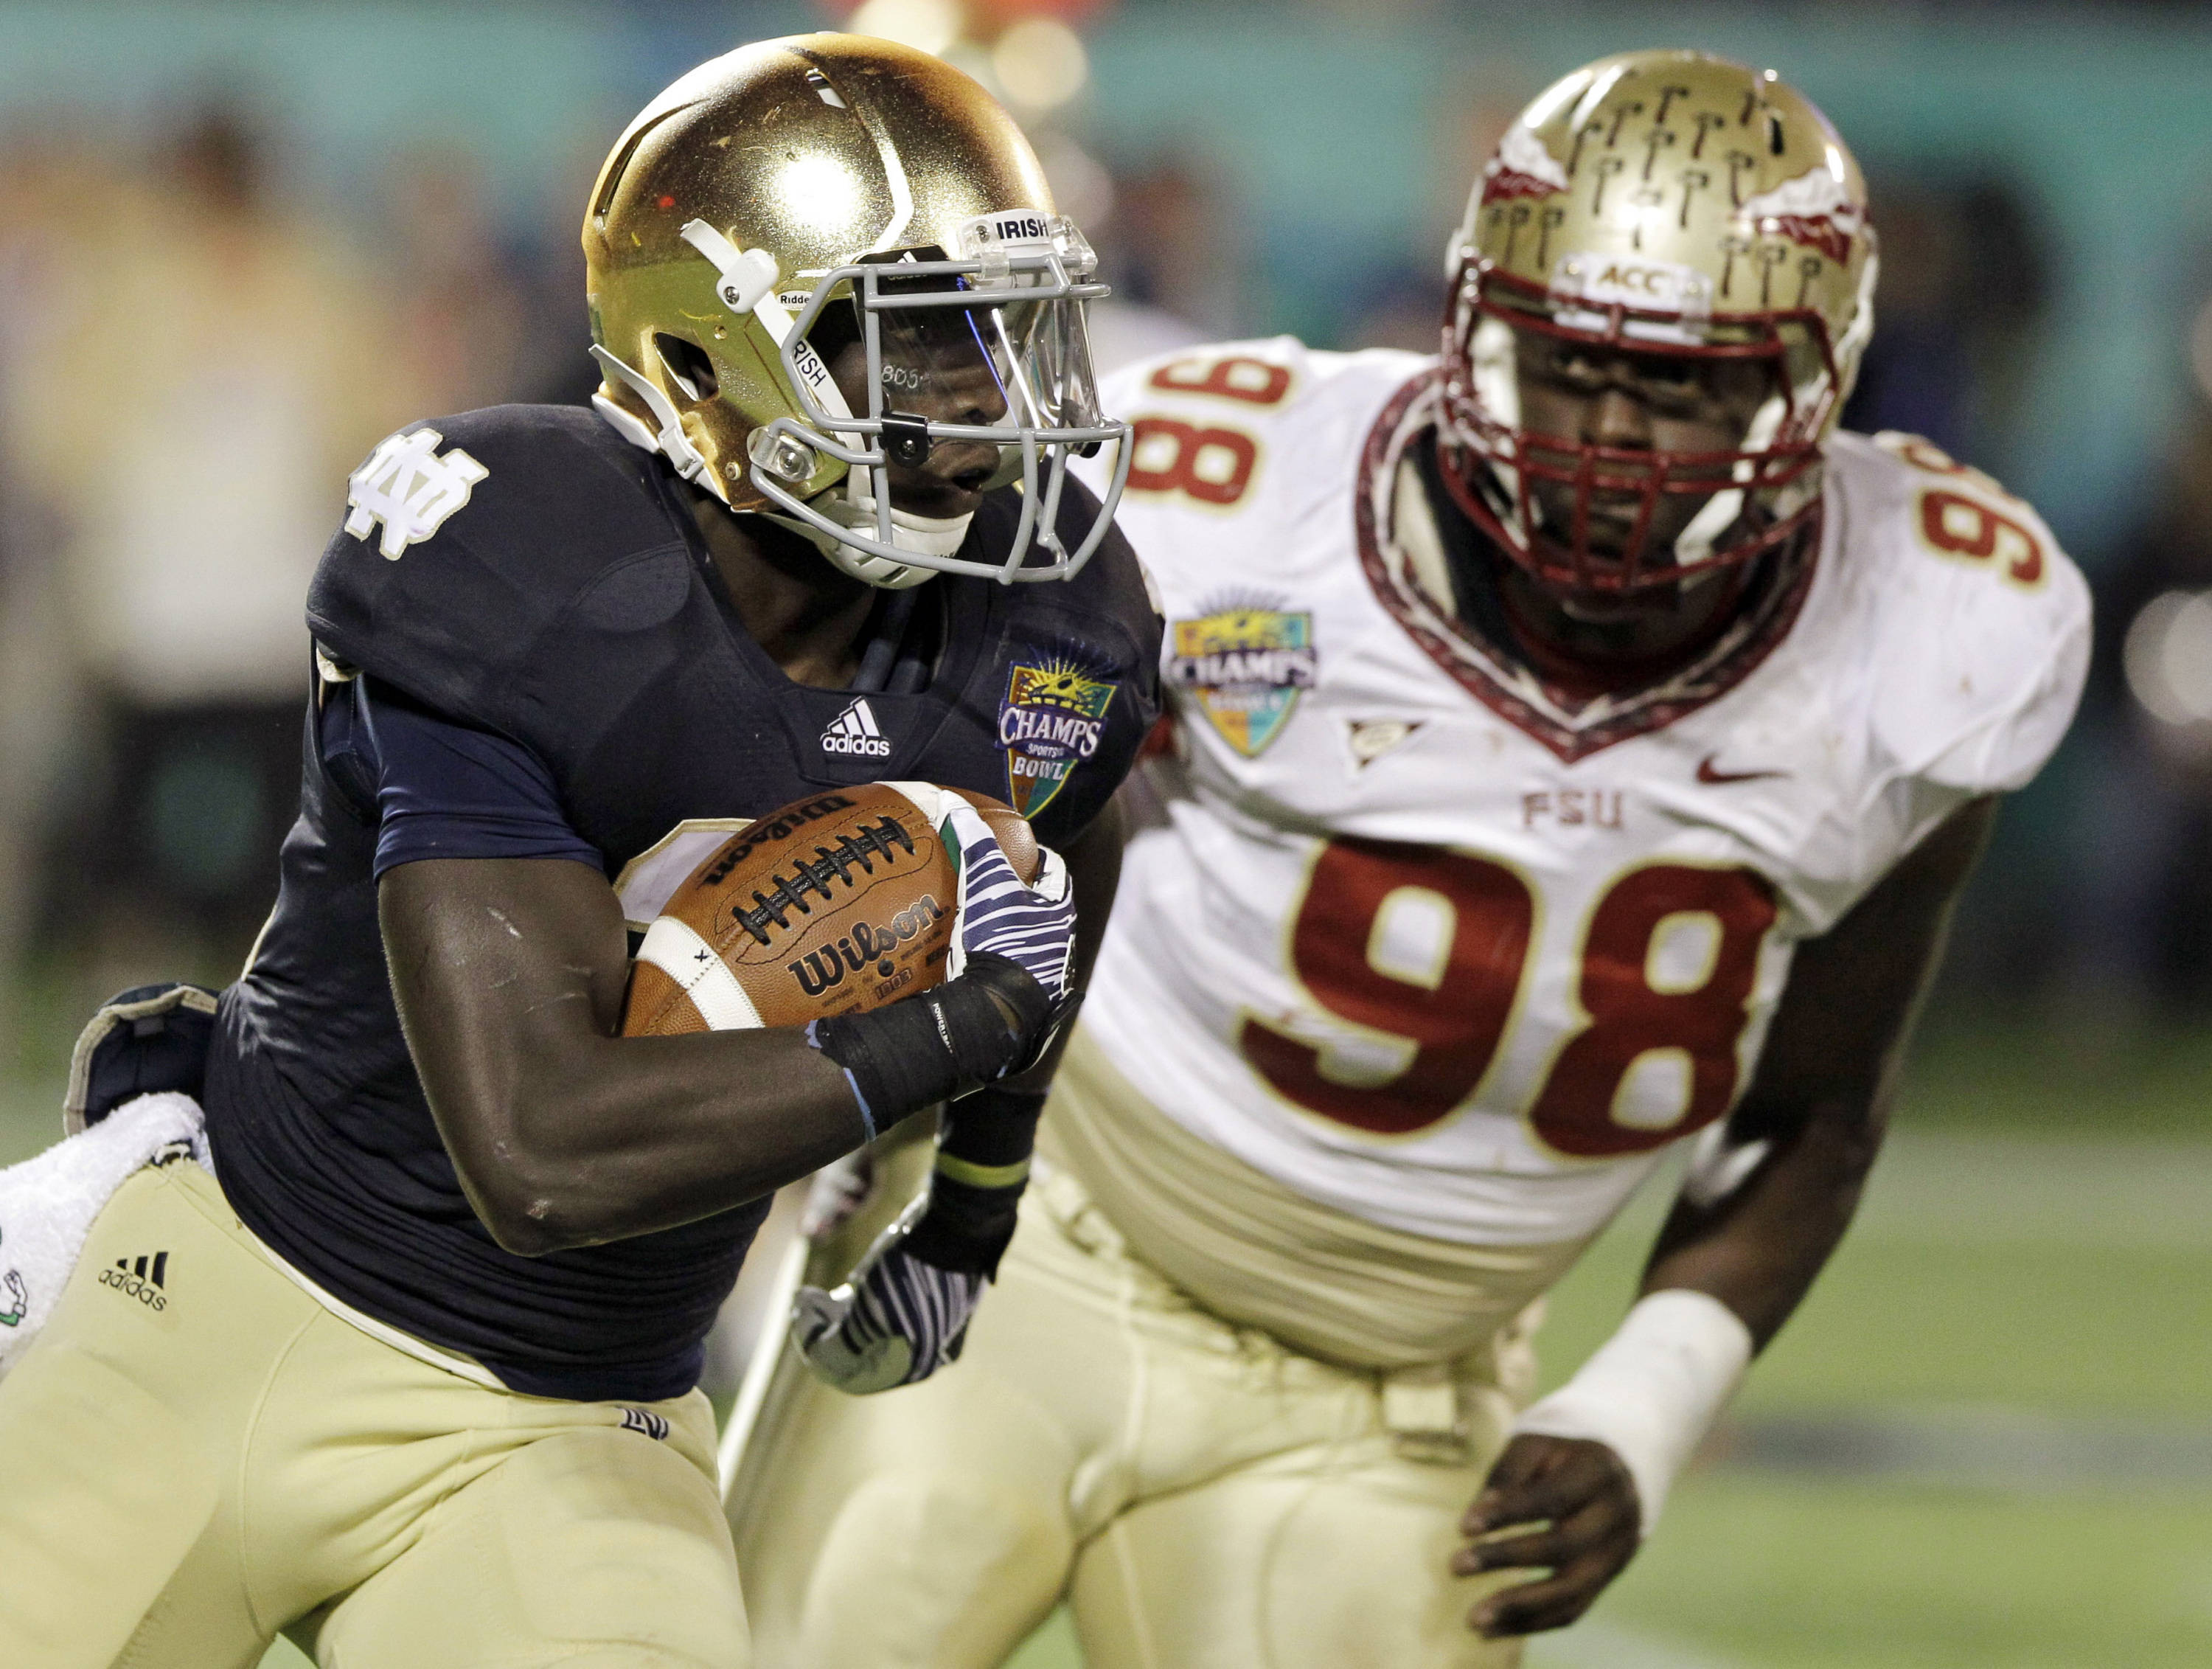 Notre Dame running back Cierre Wood, left, runs to get by Florida State defensive tackle Cameron Erving during the second half. (AP Photo/John Raoux)